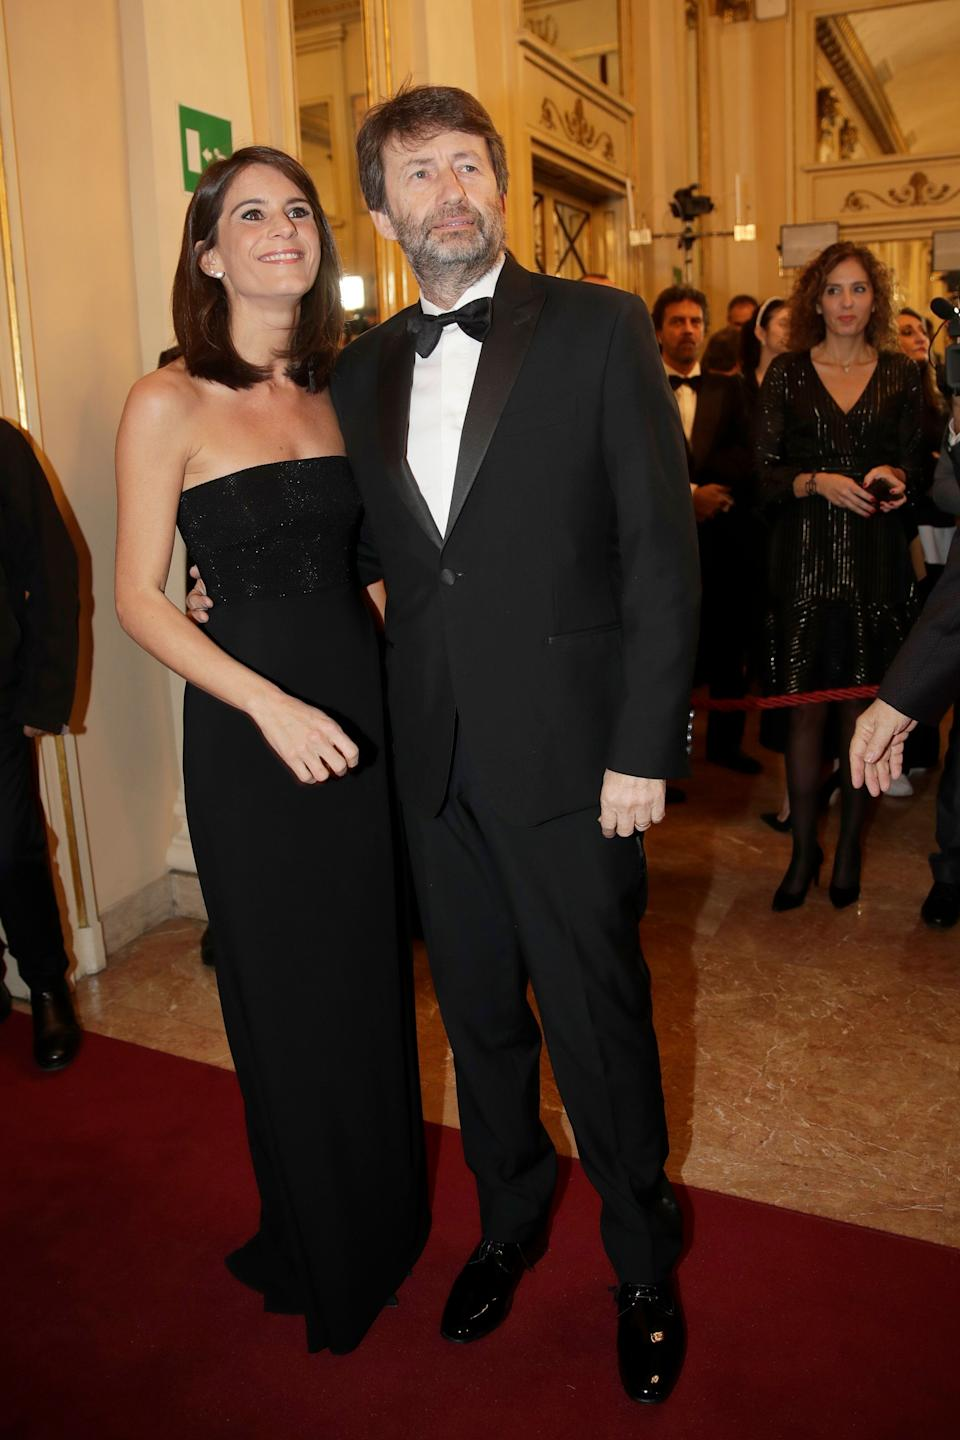 """Italian Culture Minister Dario Franceschini and his wife Michela Di Biase arrive for the gala premiere of La Scala opera house, in Milan, Italy, Saturday, Dec. 7, 2019. Milan's storied La Scala opens its 2019-2020 season on Saturday with Puccini's """"Tosca,"""" which stars Russian soprano Anna Netrebko as the object of unwanted sexual attention from a powerful authority figure. (AP Photo/Luca Bruno) (Photo: ASSOCIATED PRESS)"""